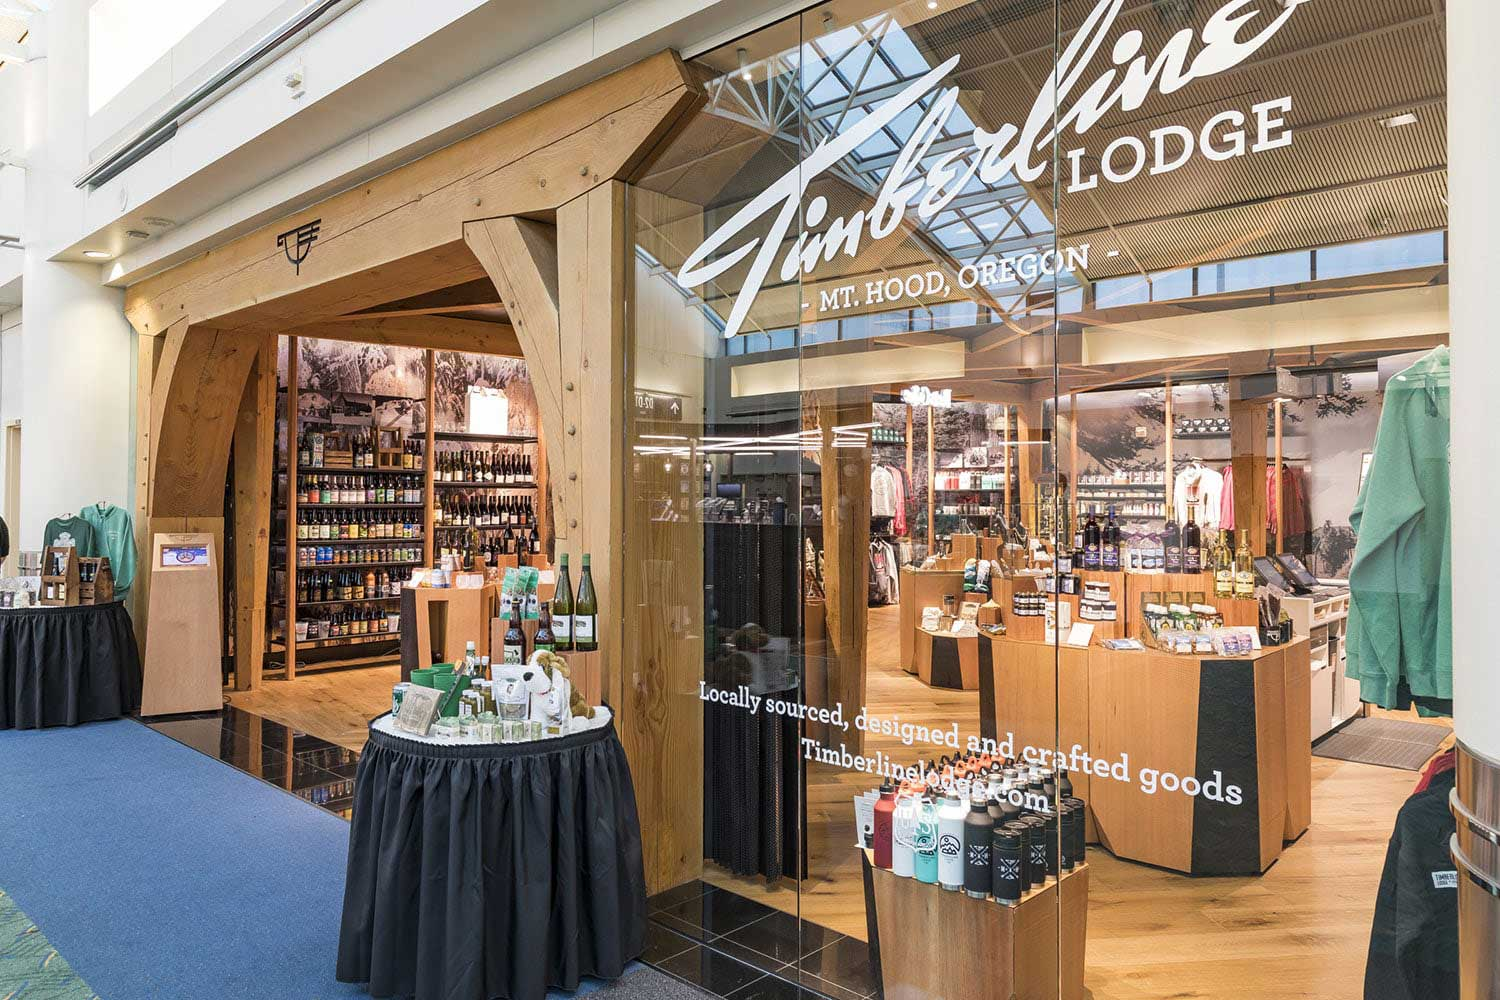 Timberline Lodge Store Timber Framing   PDX Airport